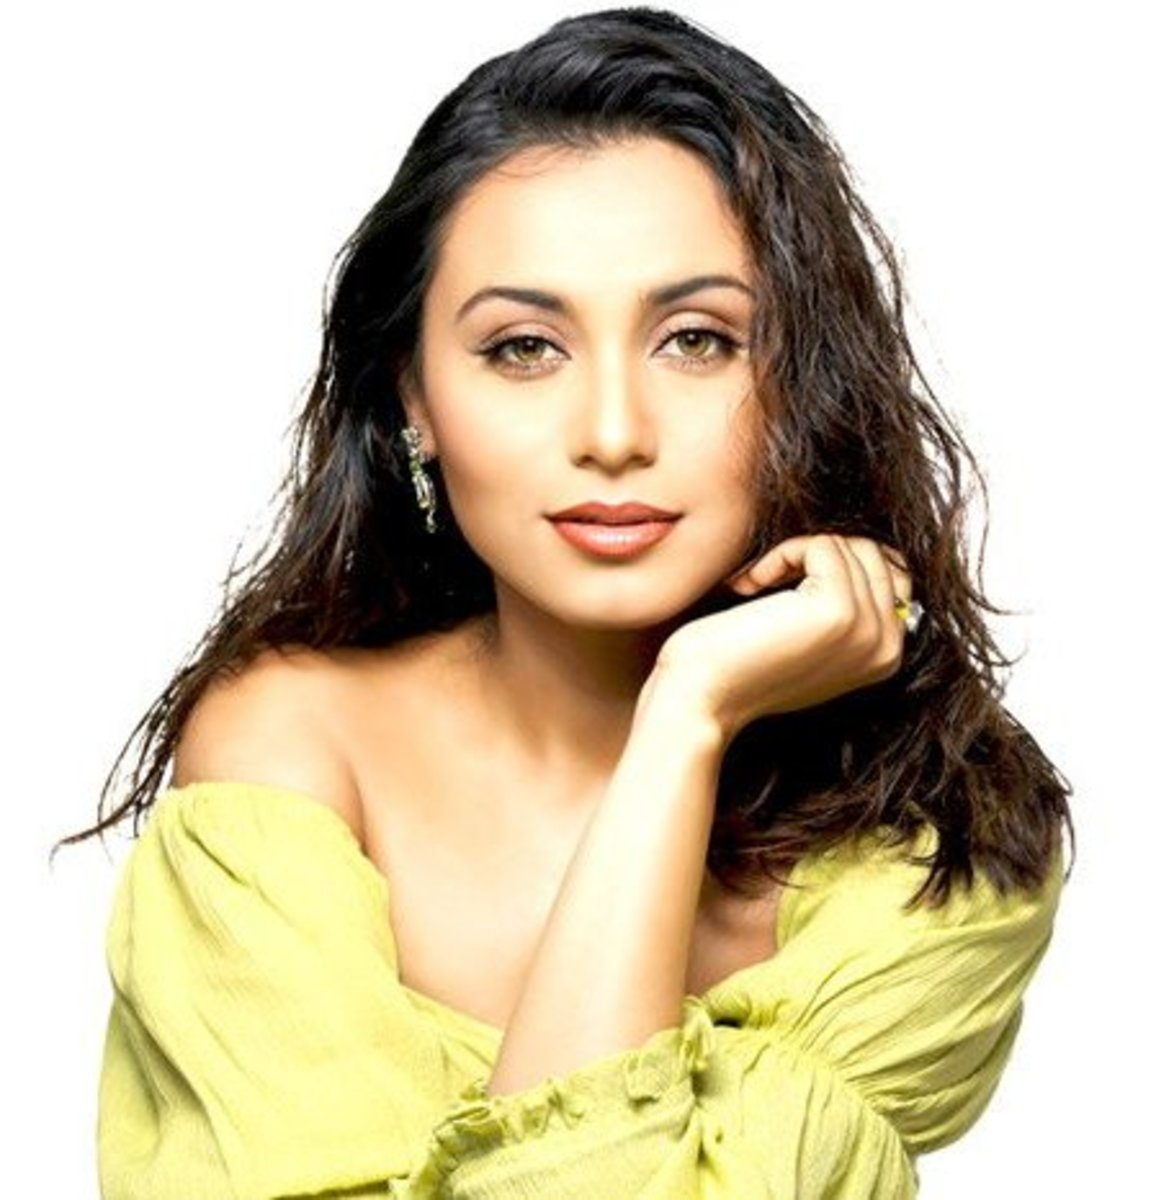 Rani Mukherjee is a popular Indian Actress known for her performances in Bollywood films.